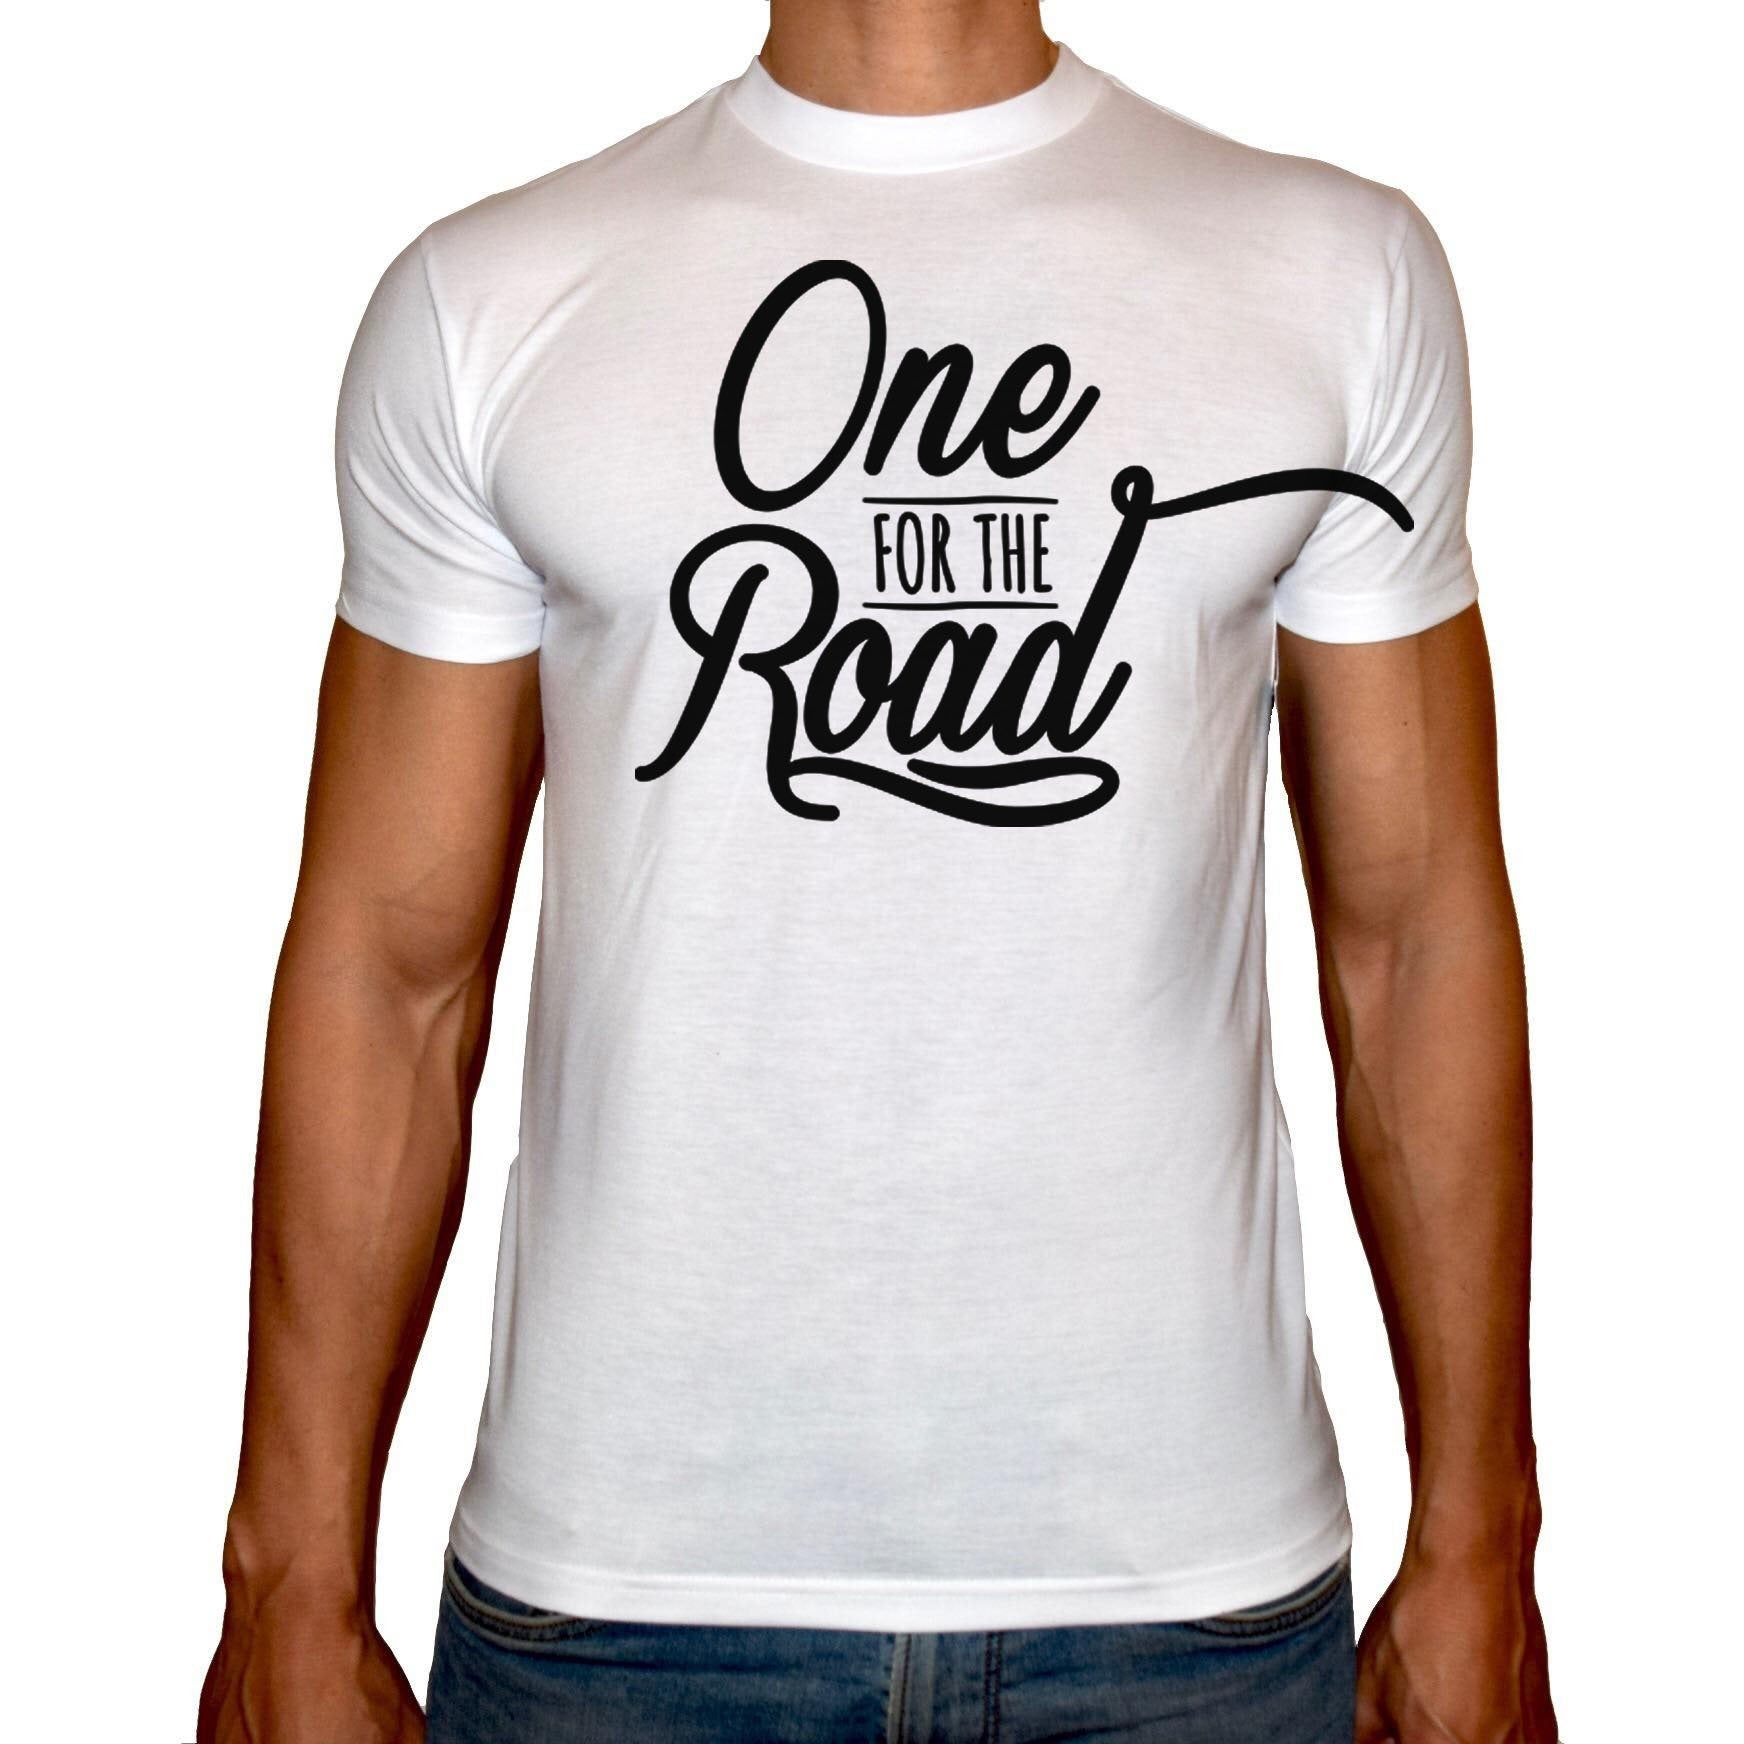 Phoenix WHITE Round Neck Printed T-Shirt Men (One for the road)